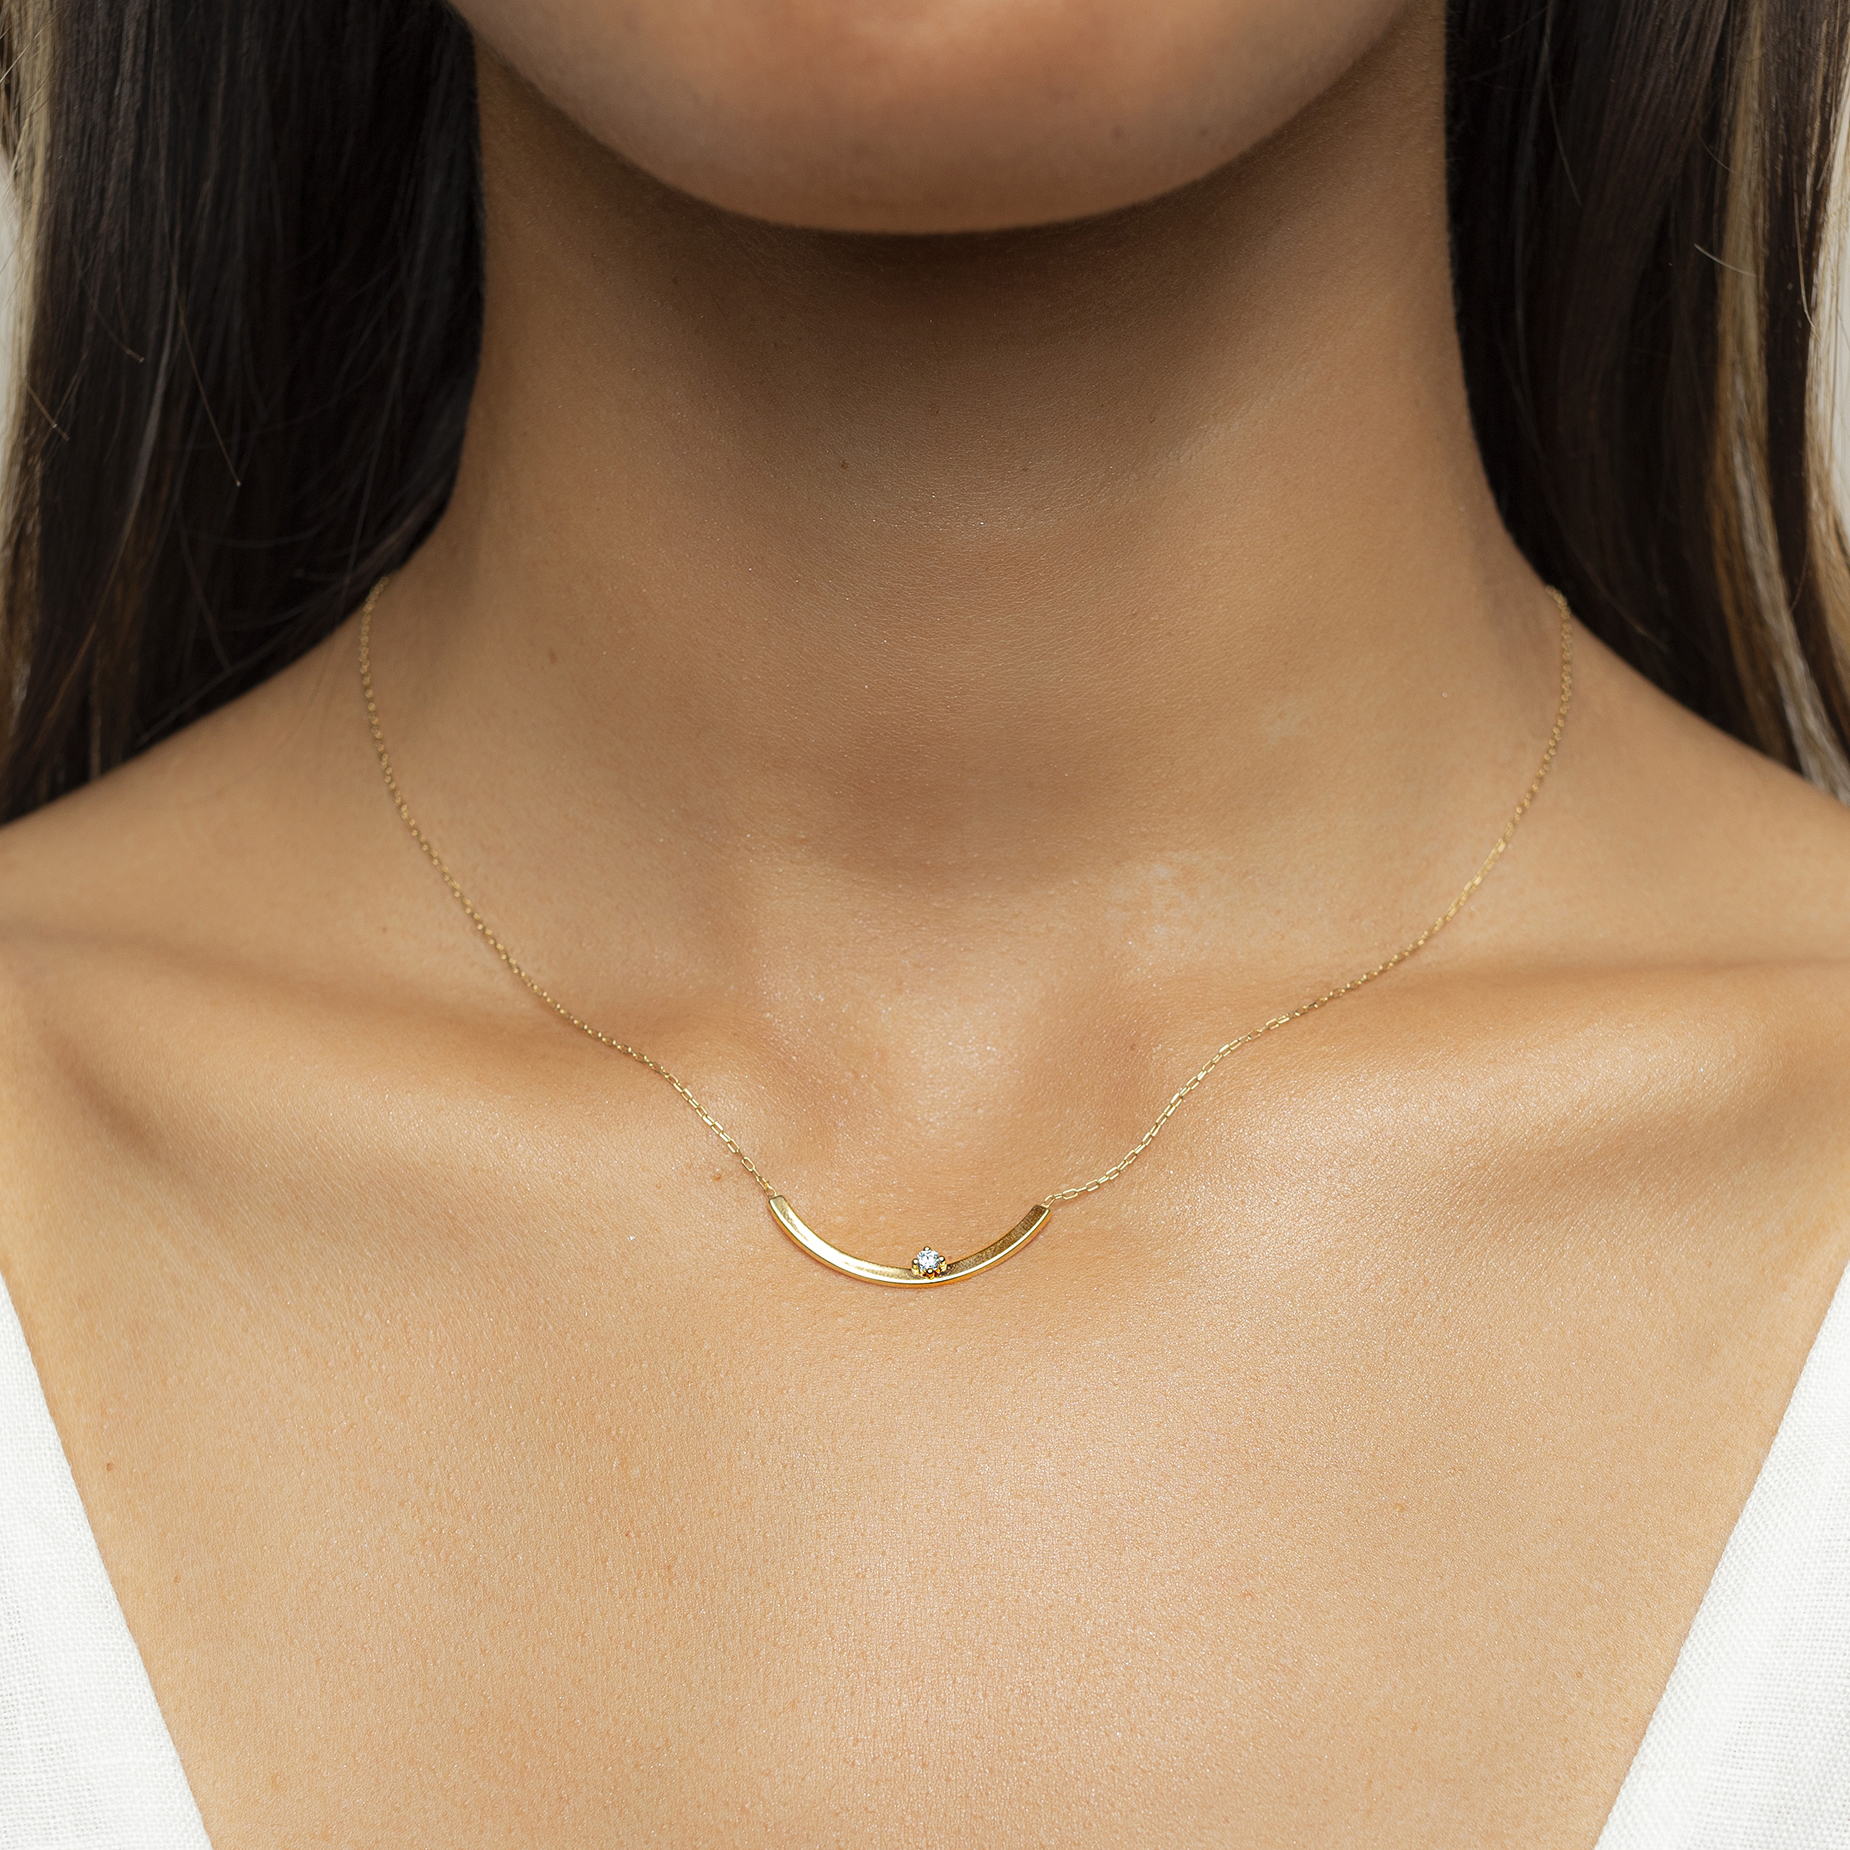 Dimple Necklace by N-UE Fine Jewellery on curated-crowd.com